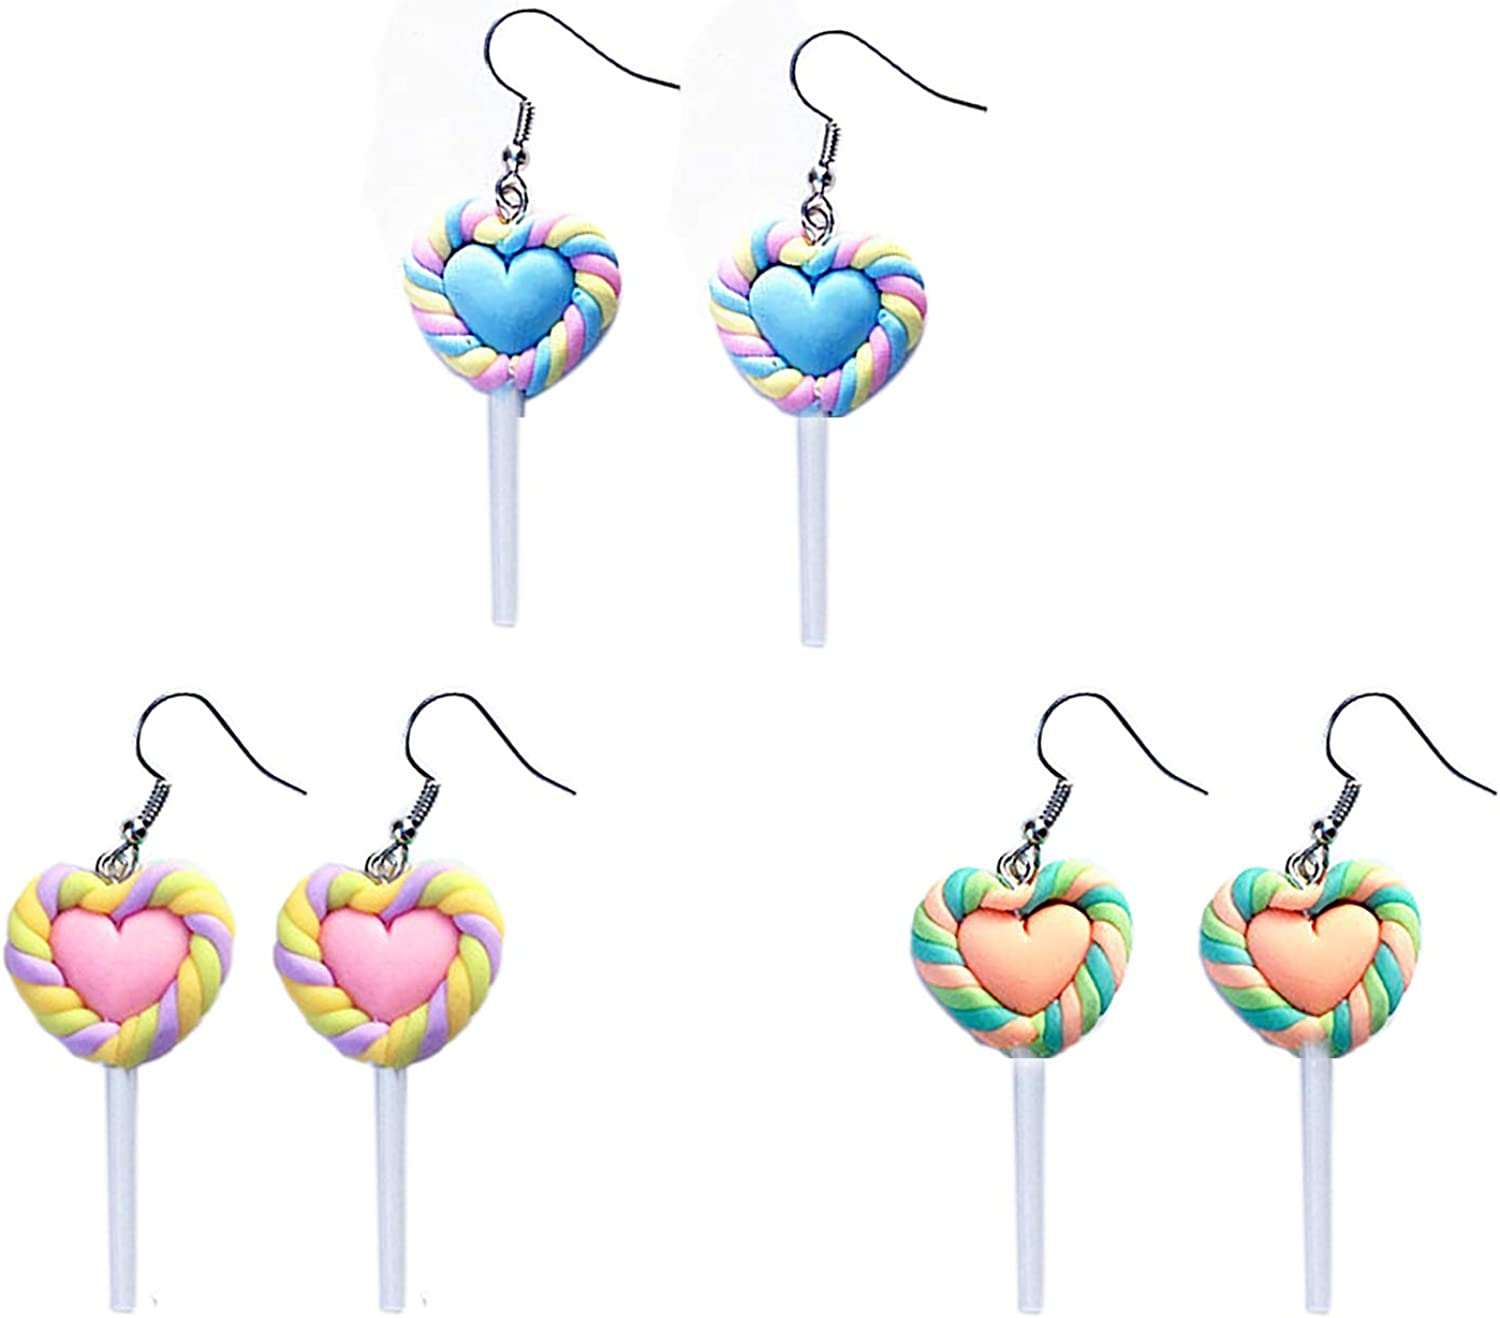 3 Pairs Funny Cute Resin Heart-shaped Lollipop Drop Earrings Handmade Candy Simulation Food Dangle Earrings for Women Girls Friendship Exaggerated Cartoon Trend Style Jewelry Gifts